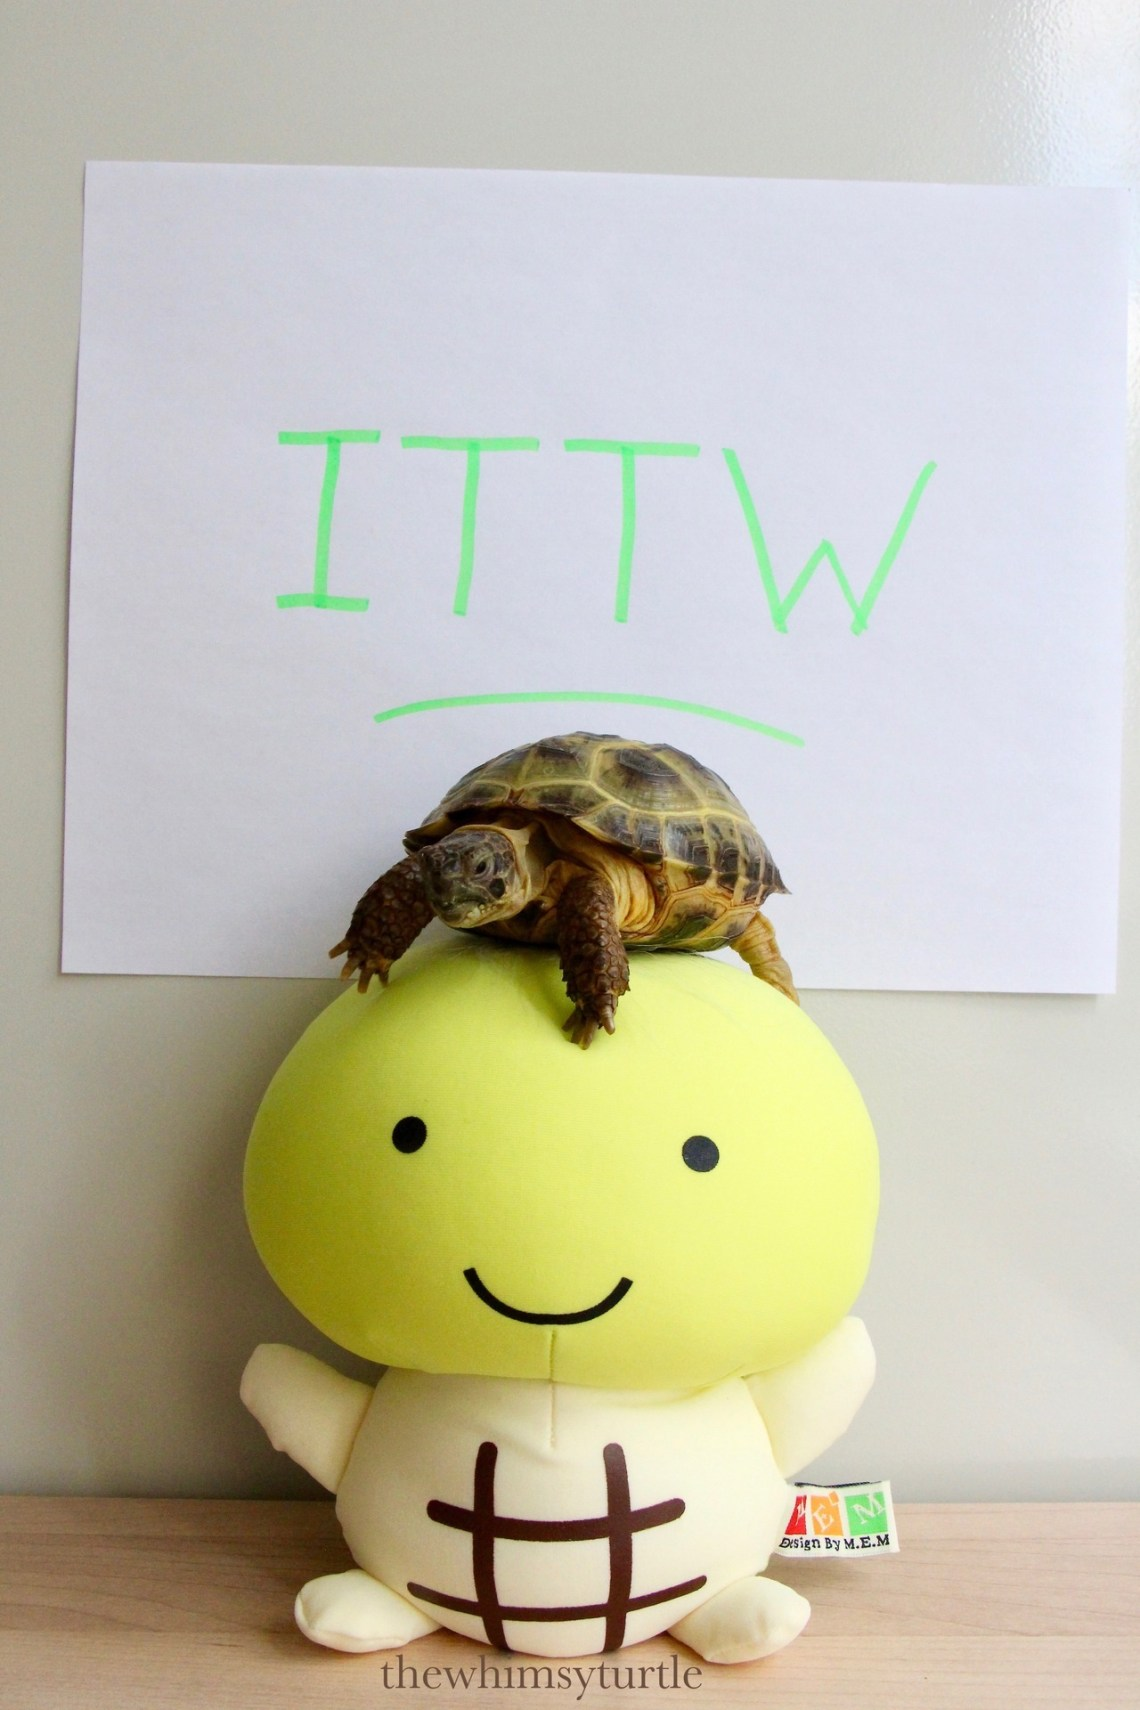 Hey, you!  Where are our ITTW party noms?!